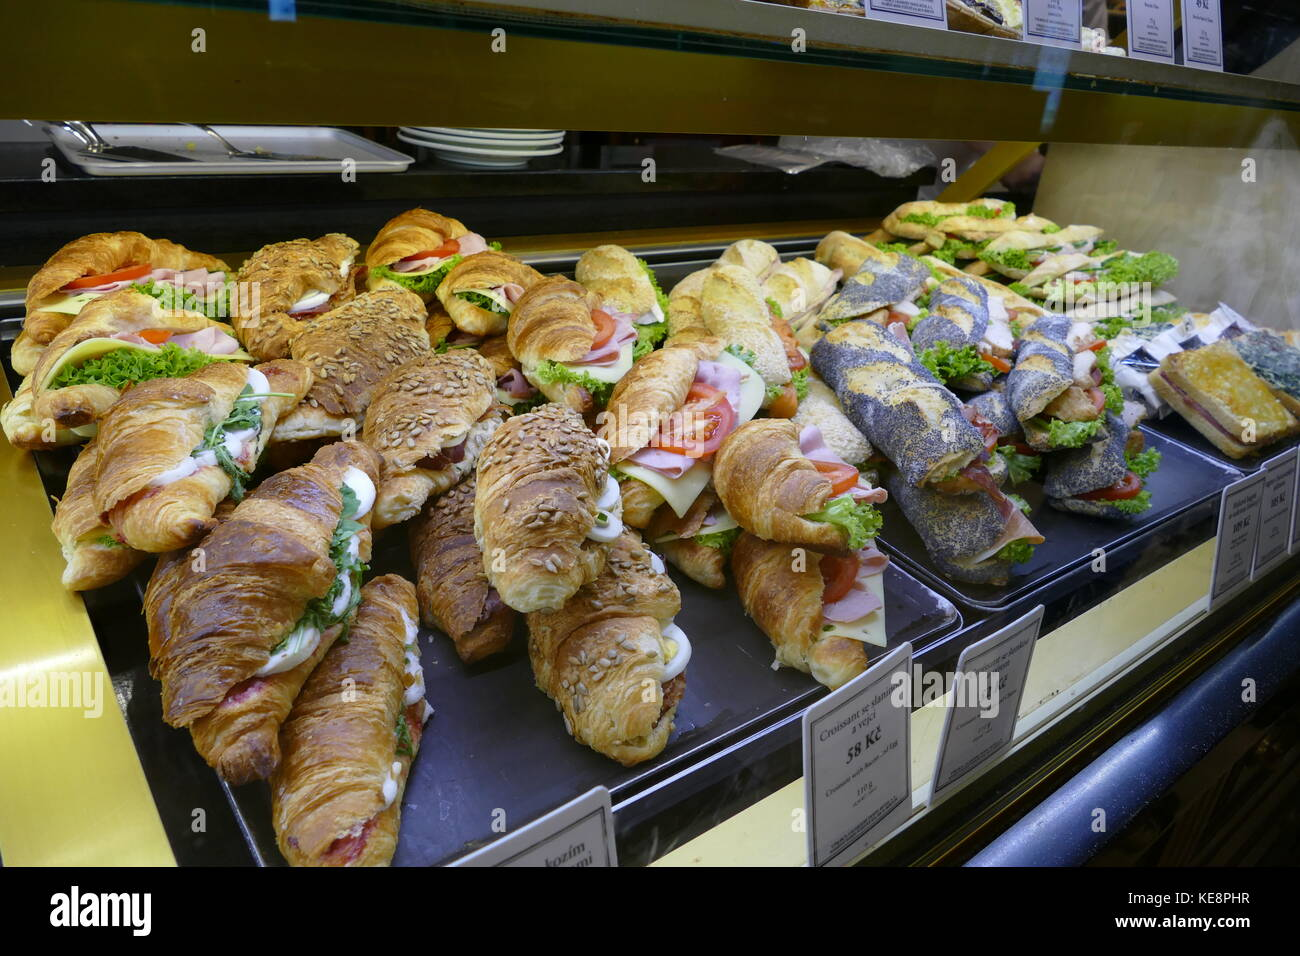 A vitrine full of stuffed croissants and baguettes in Paul's Bakery in Old Town, Prague, Czech Republic. - Stock Image